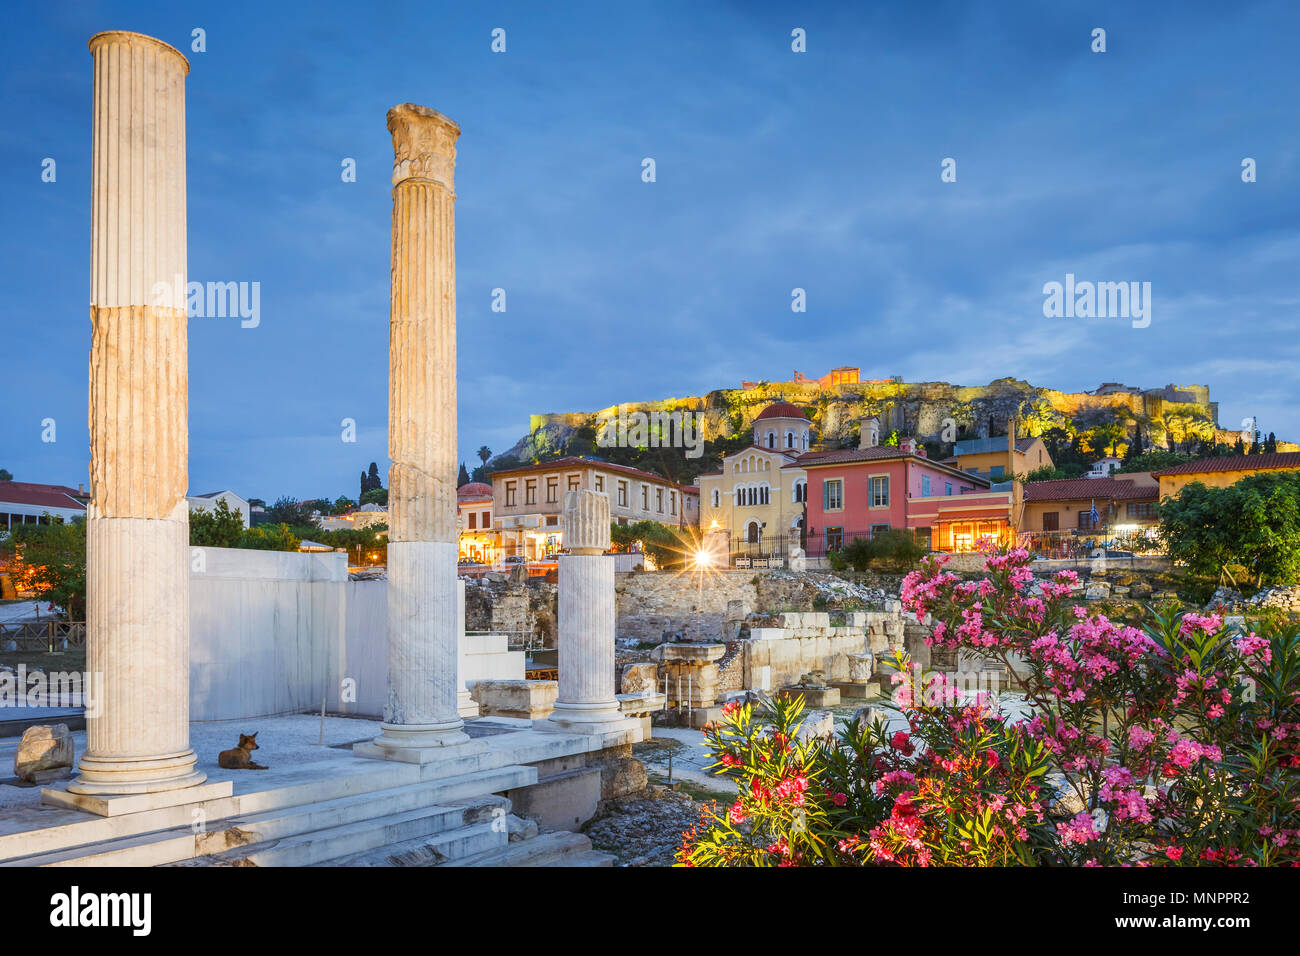 Remains of Hadrian's Library and Acropolis in the old town of Athens, Greece. - Stock Image